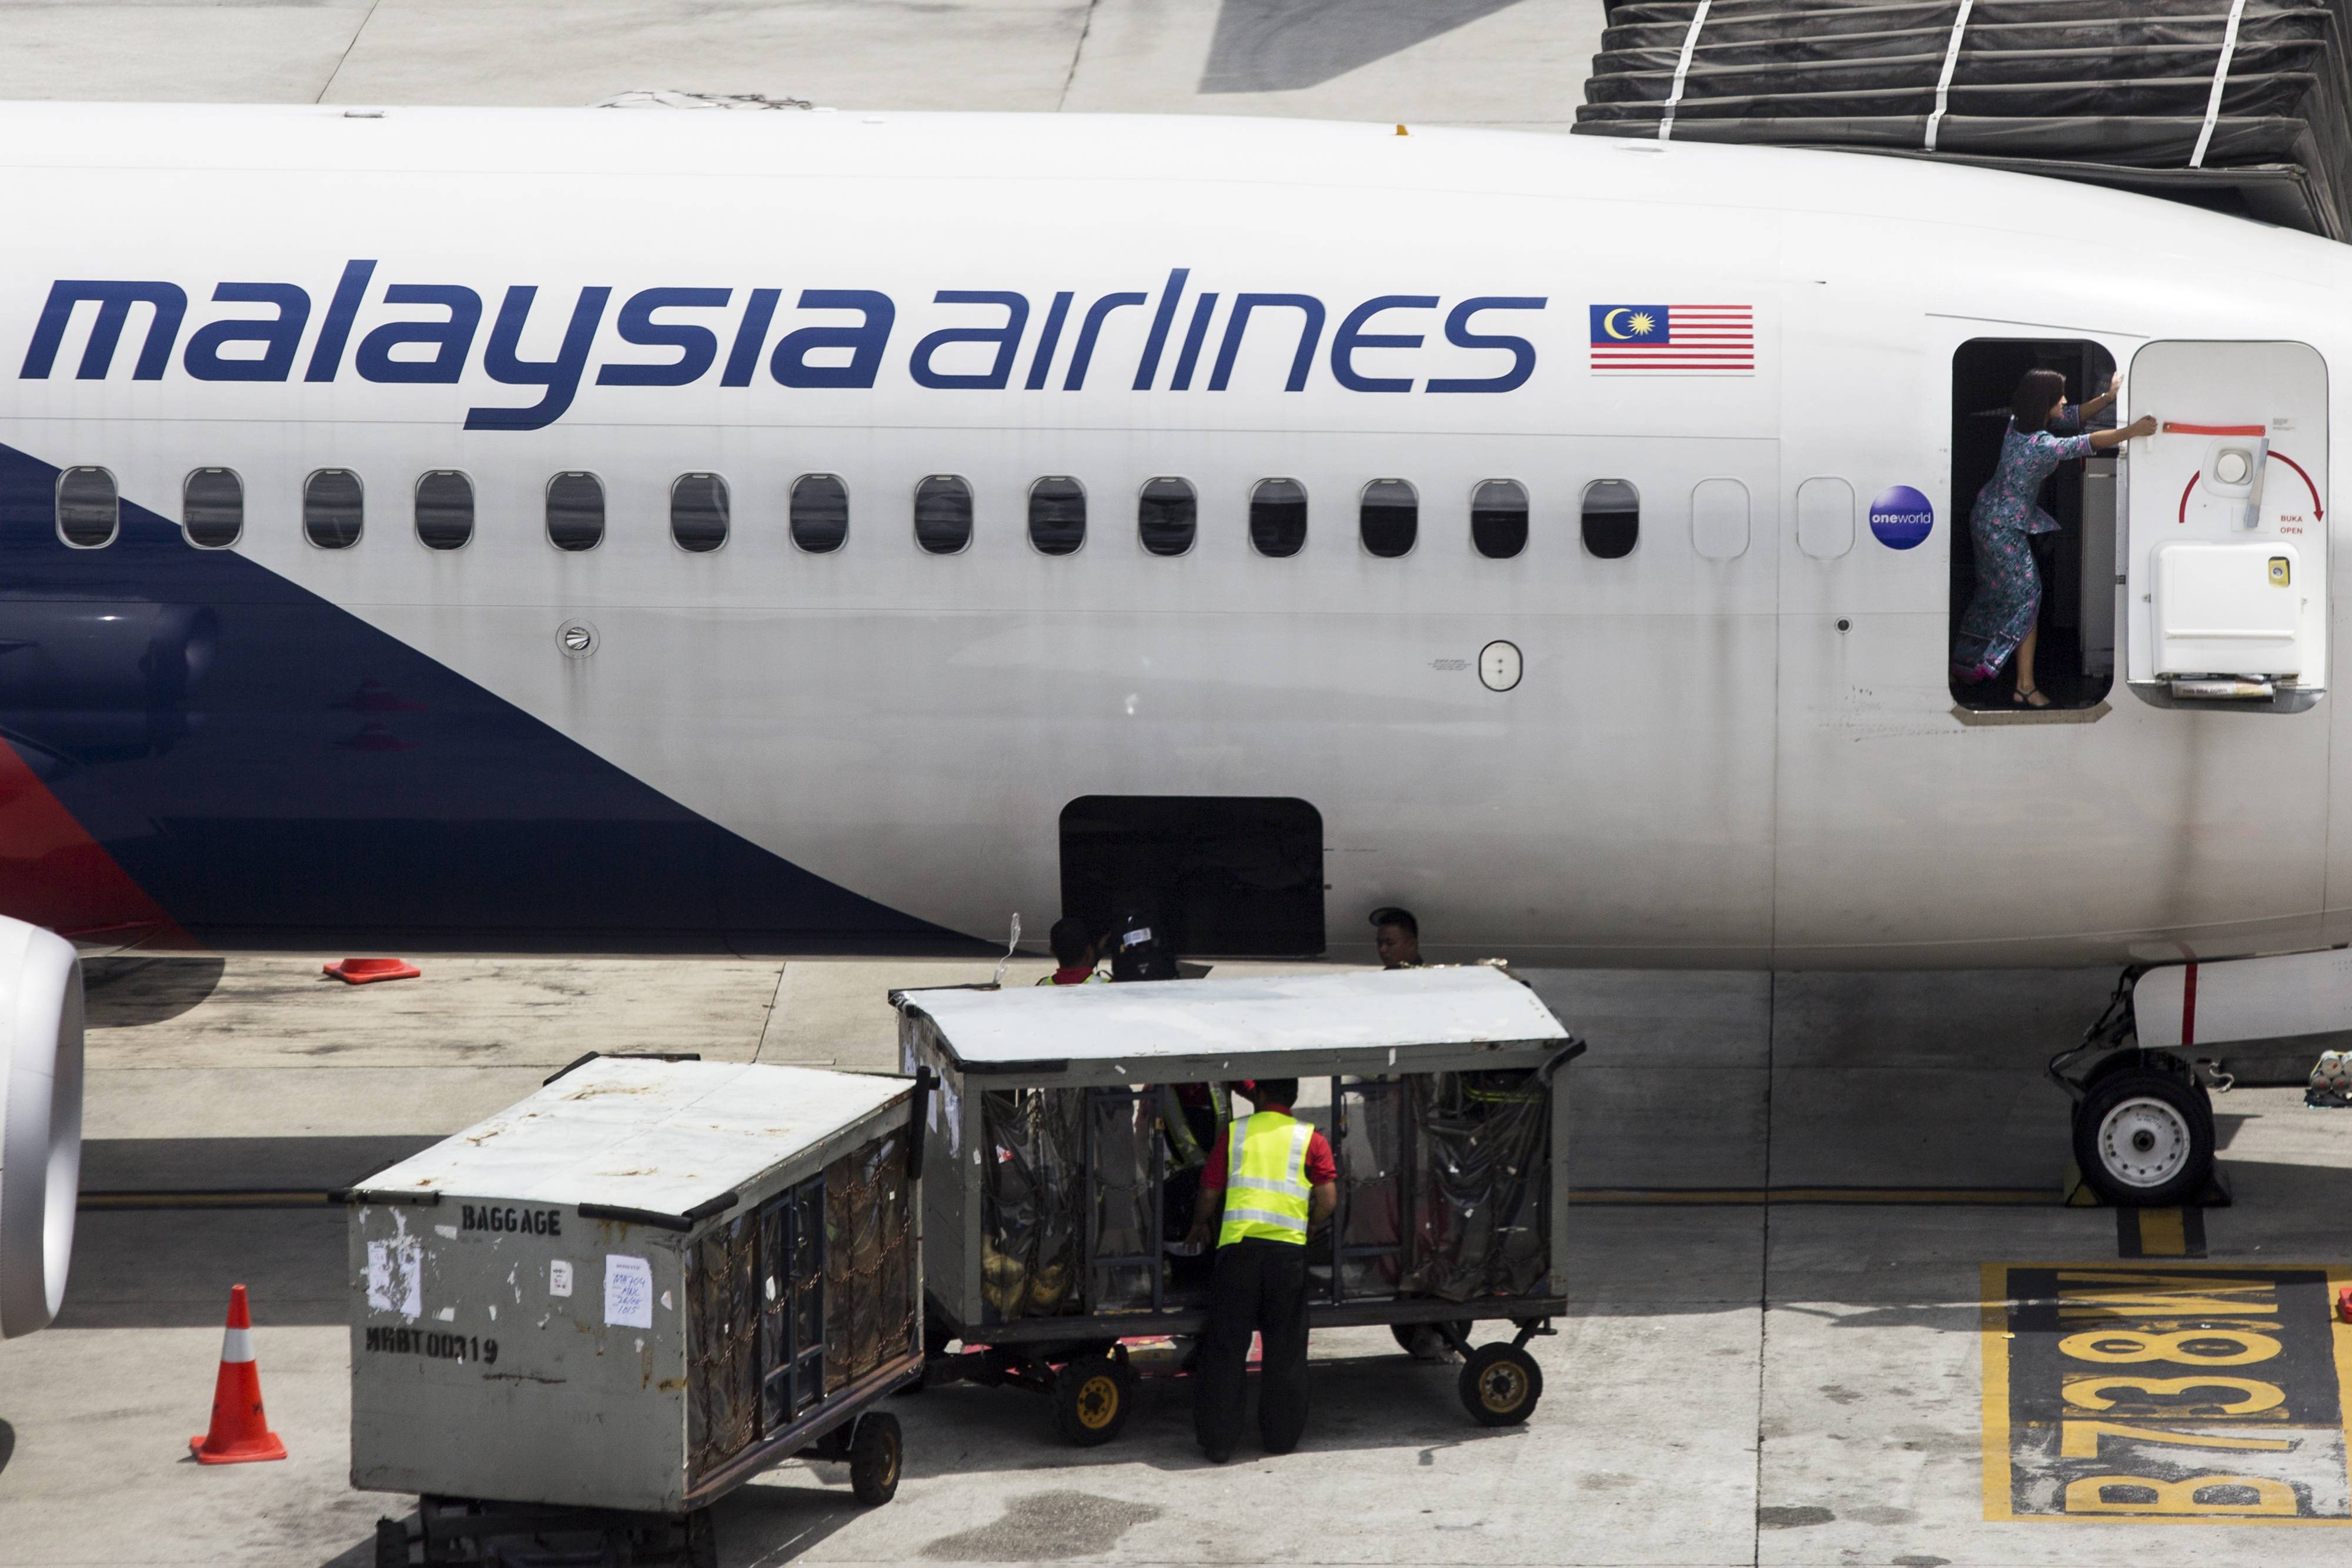 A flight attendant reaches out to close the door of an aircraft operated by Malaysian Airline System Bhd. (MAS) at Kuala Lumpur International Airport (KLIA) in Sepang, Malaysia. The airlines which lost a plane to a missile in Ukraine while another remains missing for months, reported a sixth quarter of losses as its majority owner considers a restructuring plan.